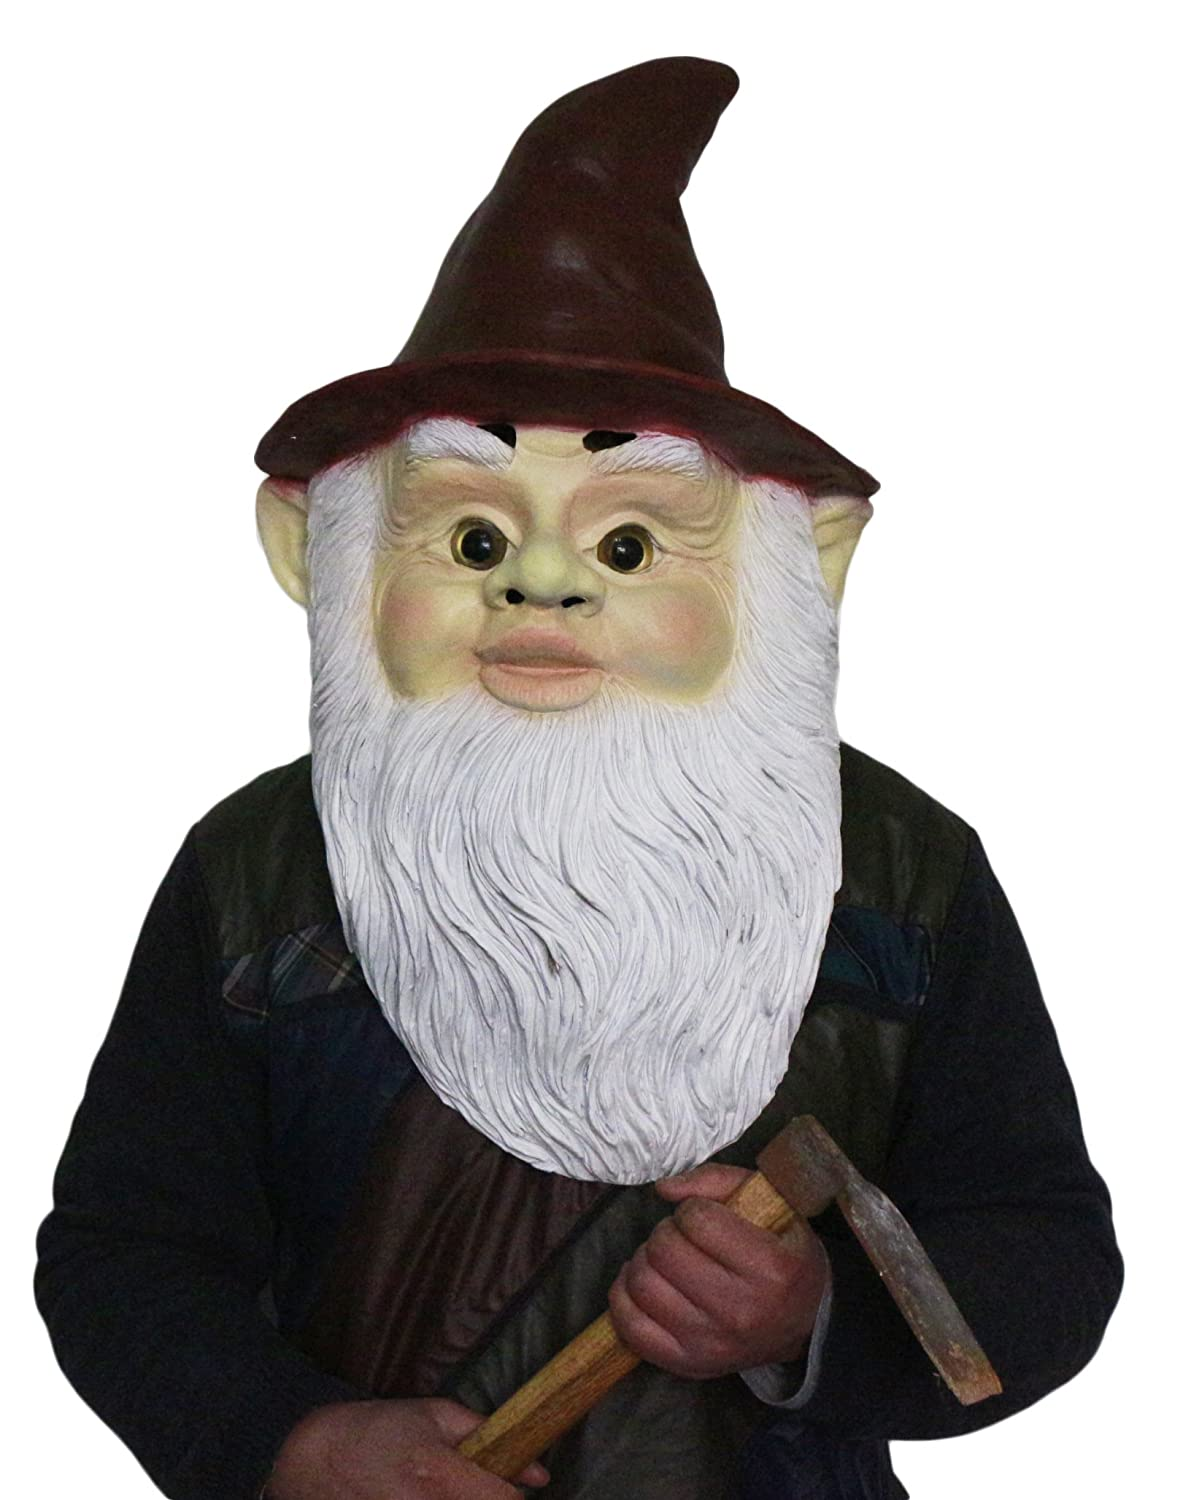 Gnome Wizard Dwarf Full Head Latex Mask Realistic Old Man with White Beard Mask Grandpa Midget Costume